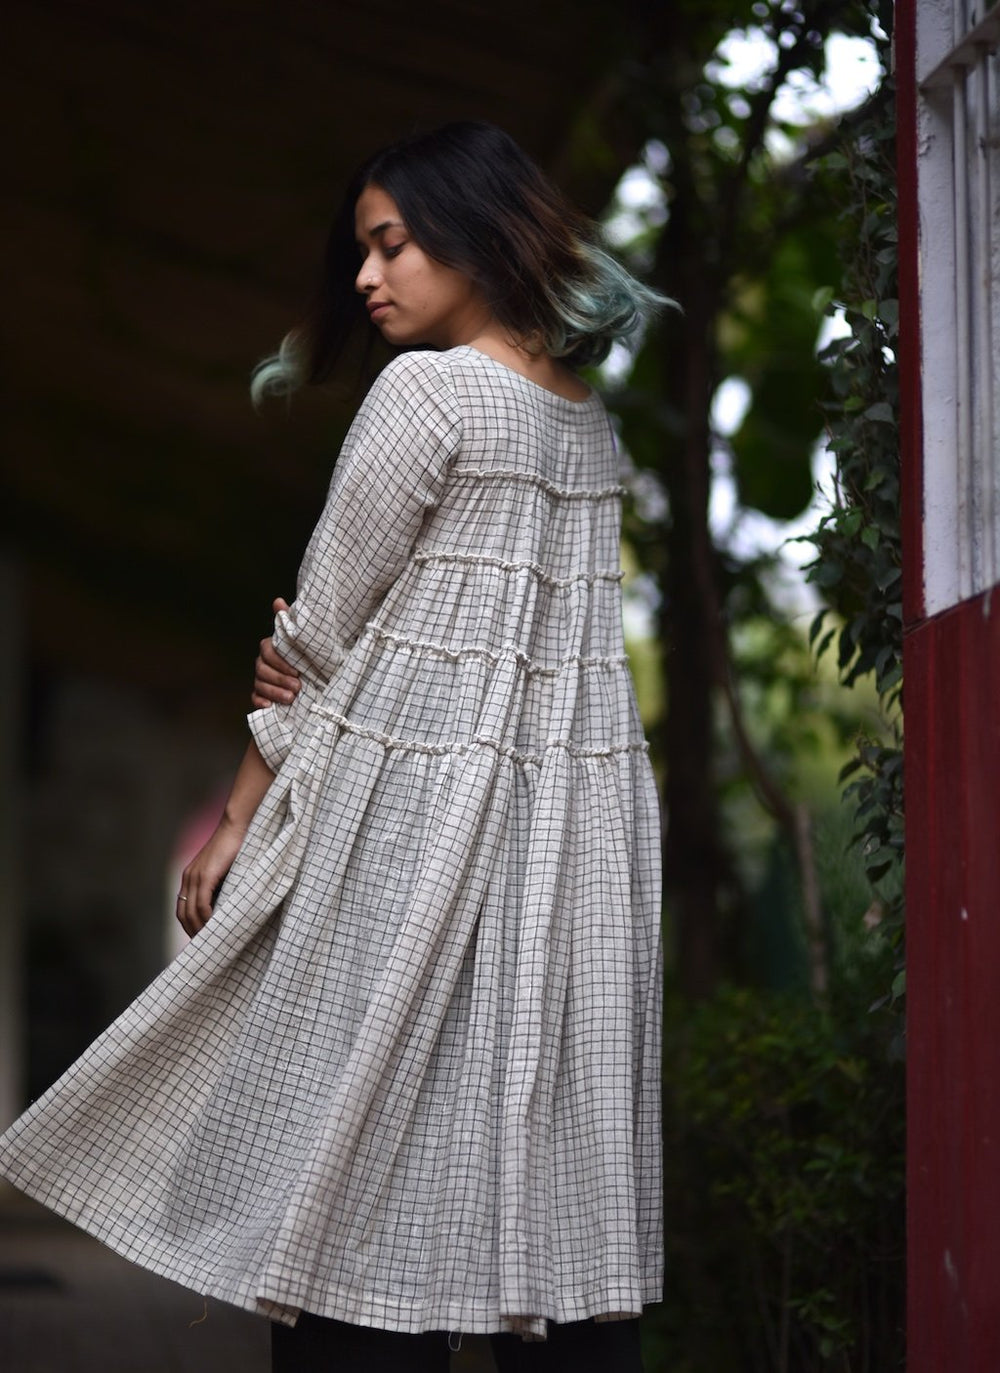 Philomena, Organic Cotton Flared Dress with Hand Embroidery + Grey Pants in Cotton, Handmade